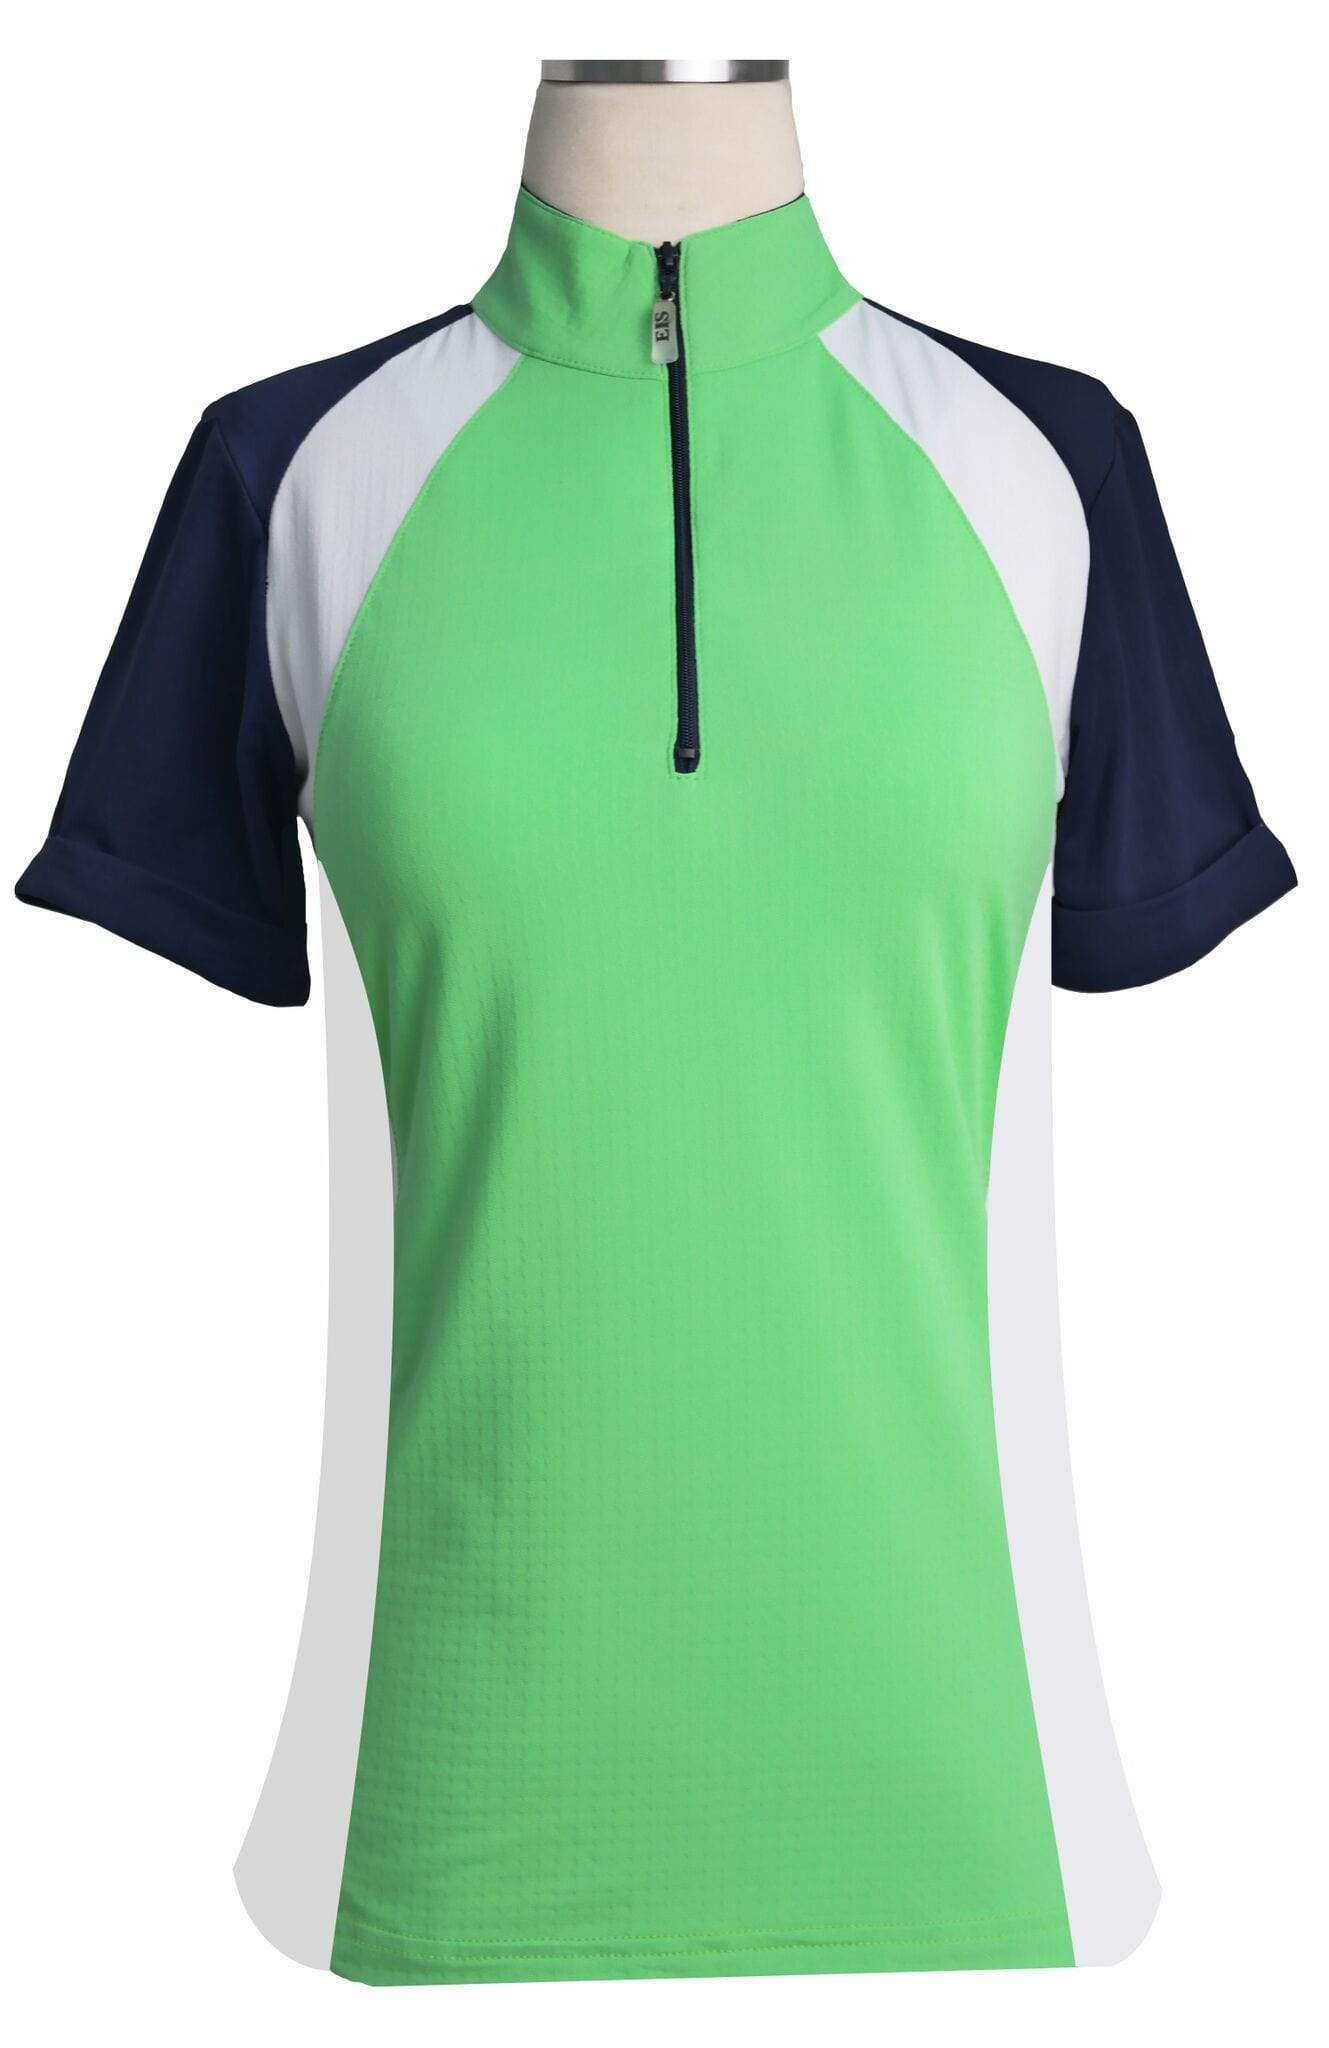 EIS Shirt EIS Lime Green Paneled Short Sleeve Sunshirts equestrian team apparel online tack store mobile tack store custom farm apparel custom show stable clothing equestrian lifestyle horse show clothing riding clothes horses equestrian tack store